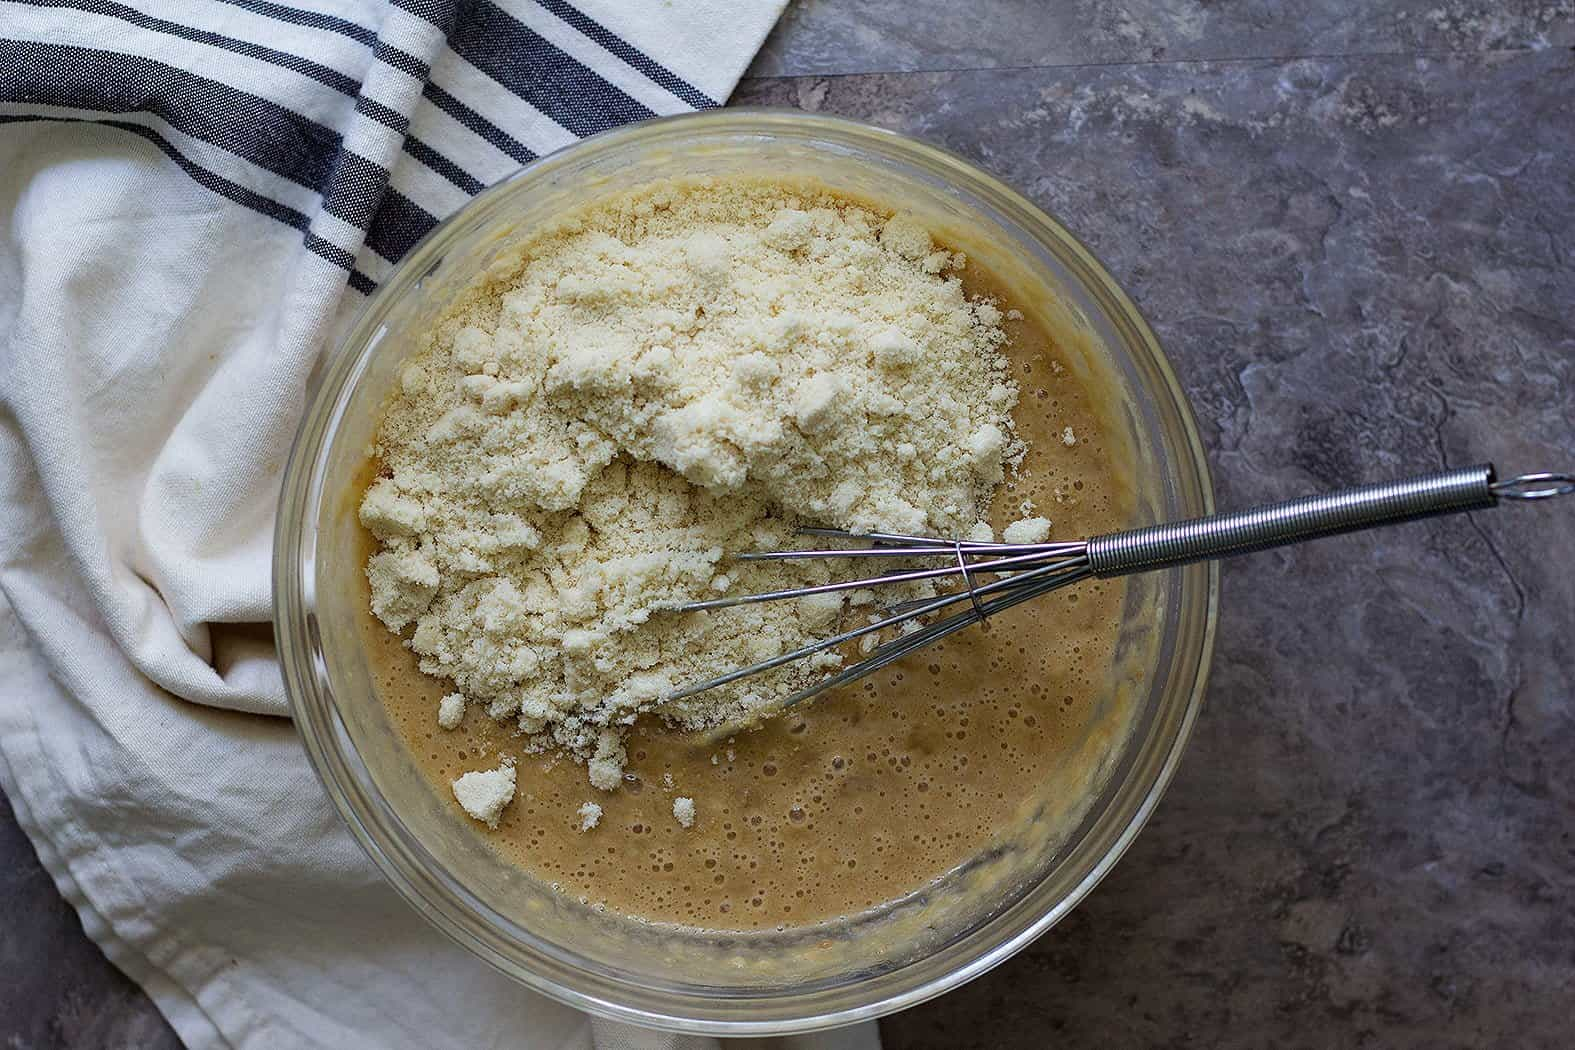 Add in bananas and almond flour and the banana bread batter is ready.